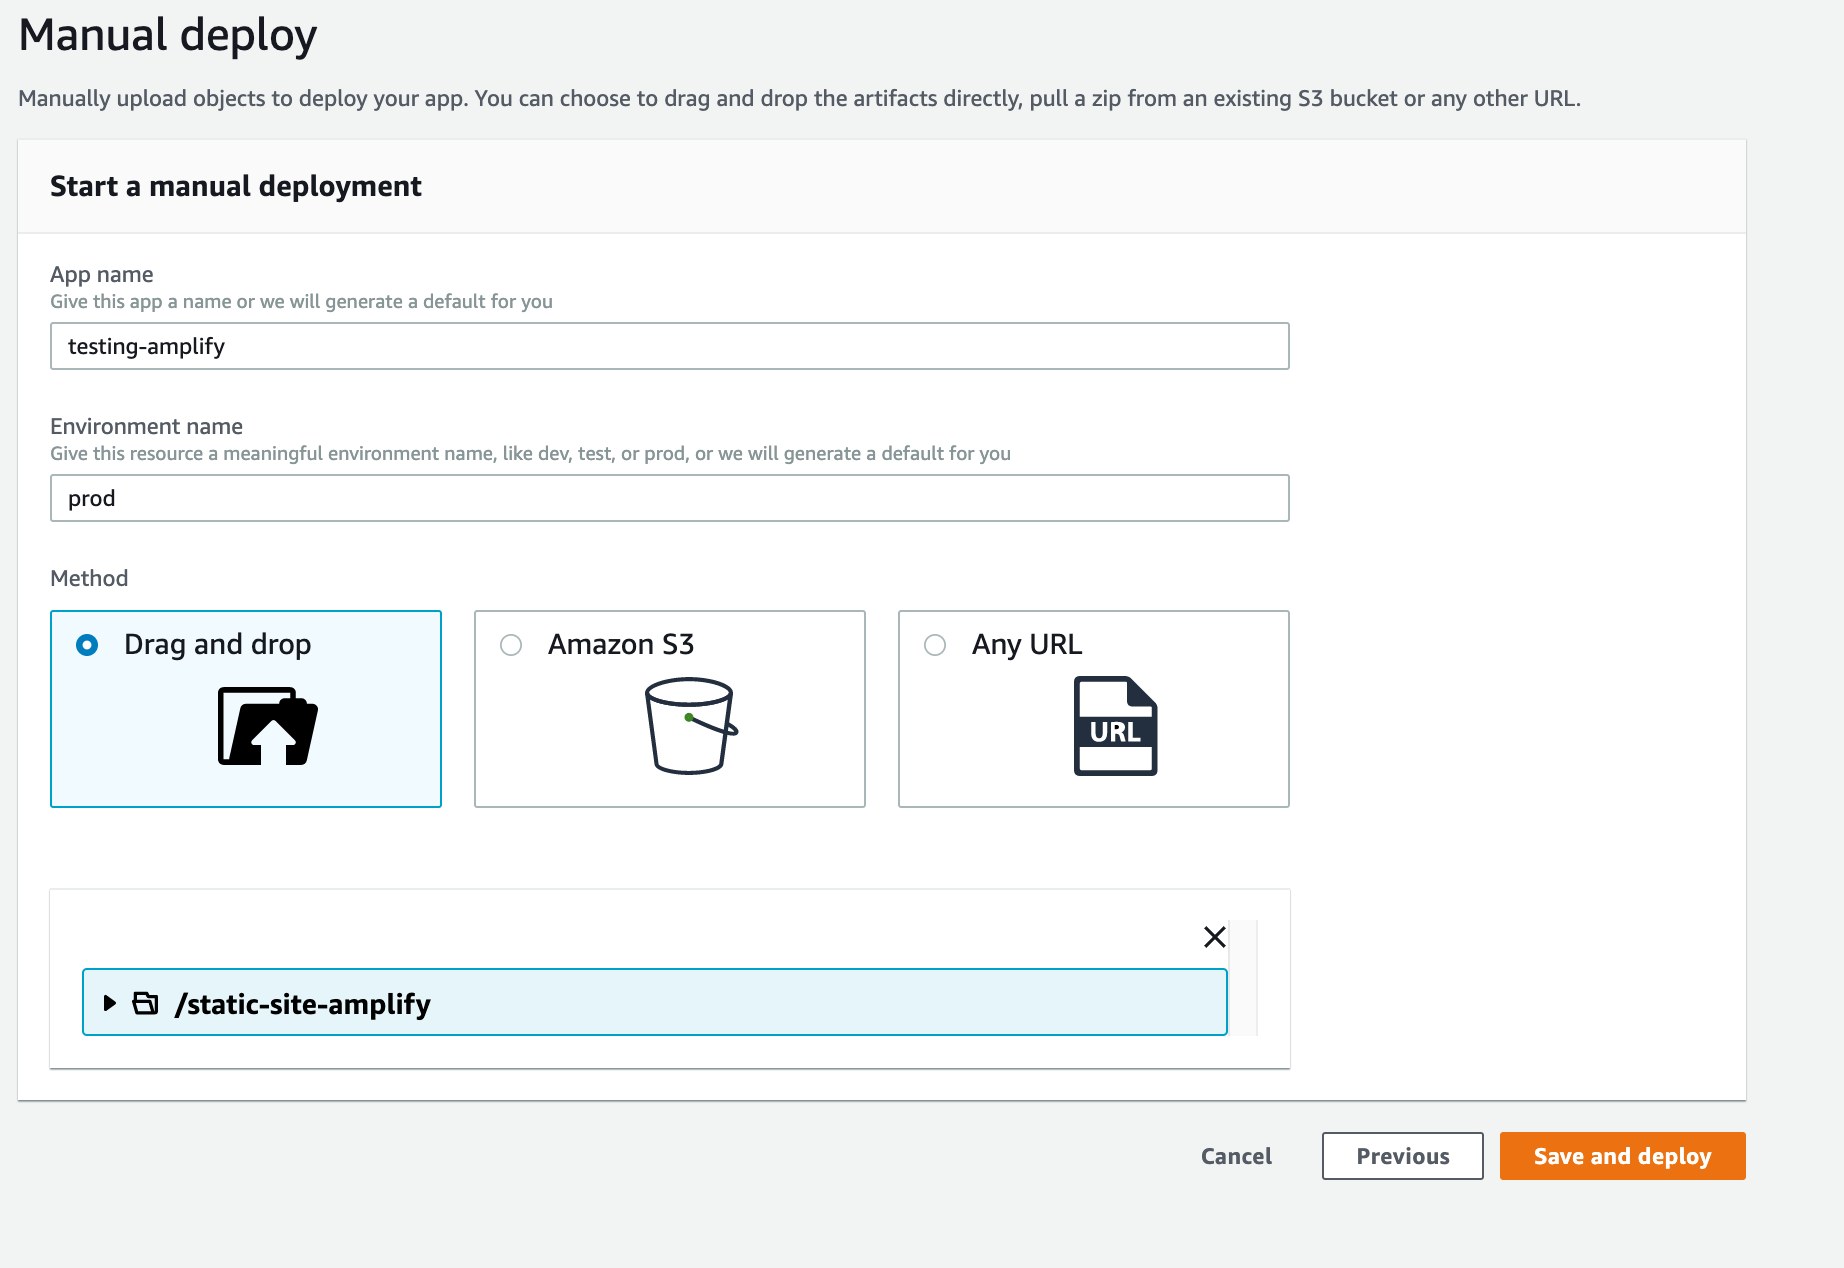 Starting a manual deployment in AWS Amplify